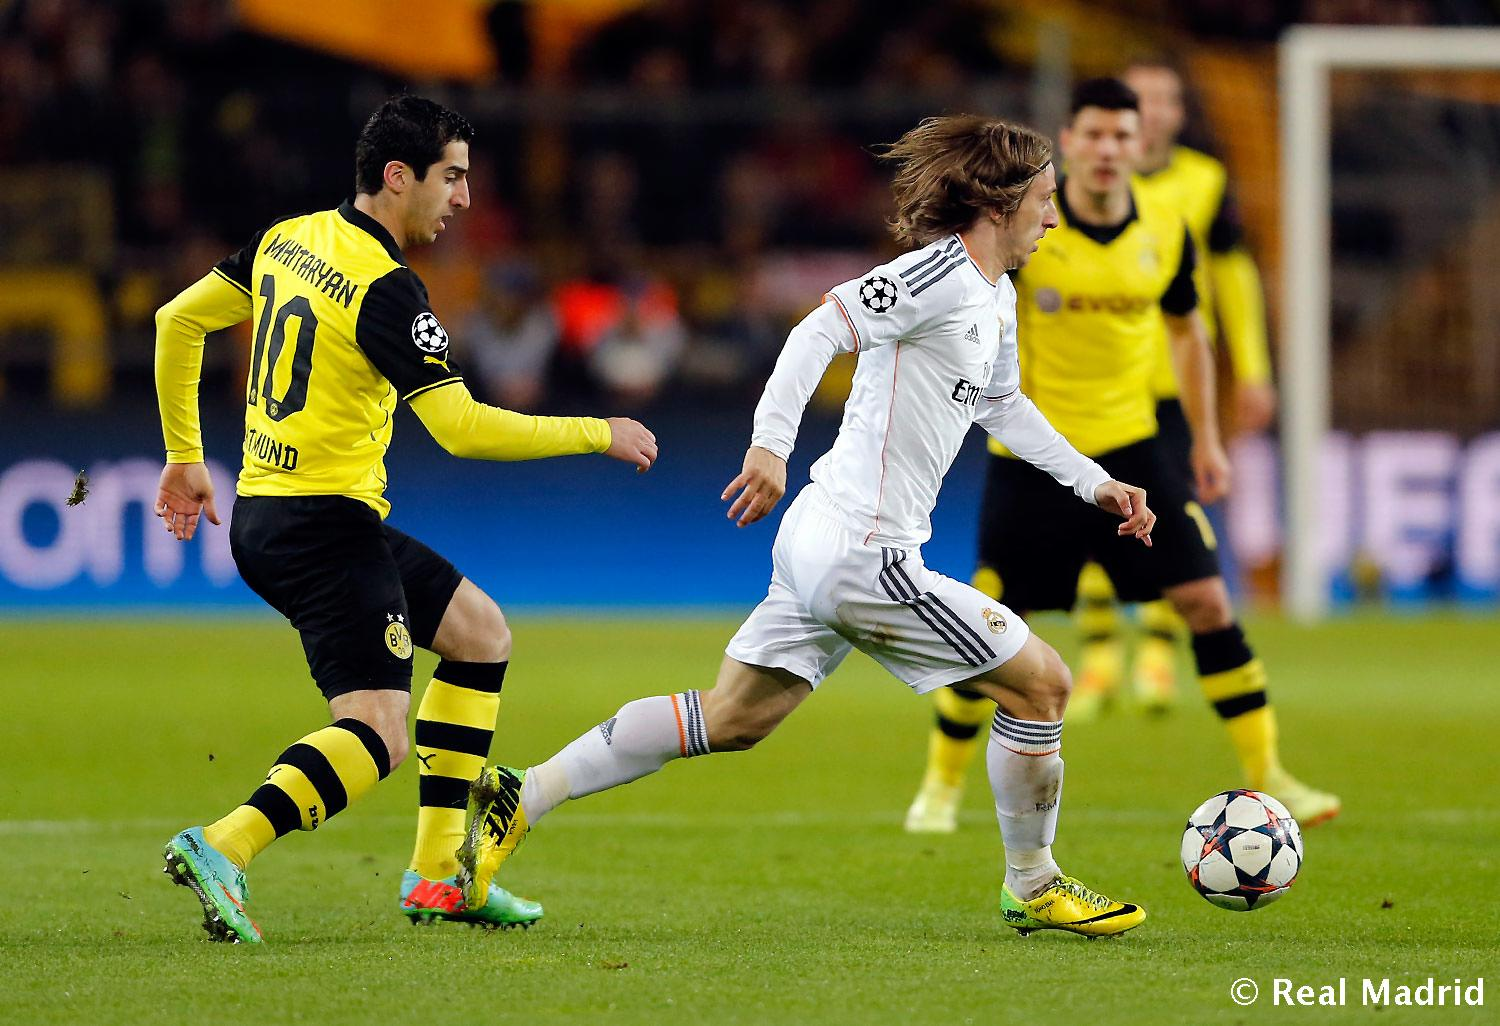 Real Madrid - Borussia Dortmund - Real Madrid - 08-04-2014